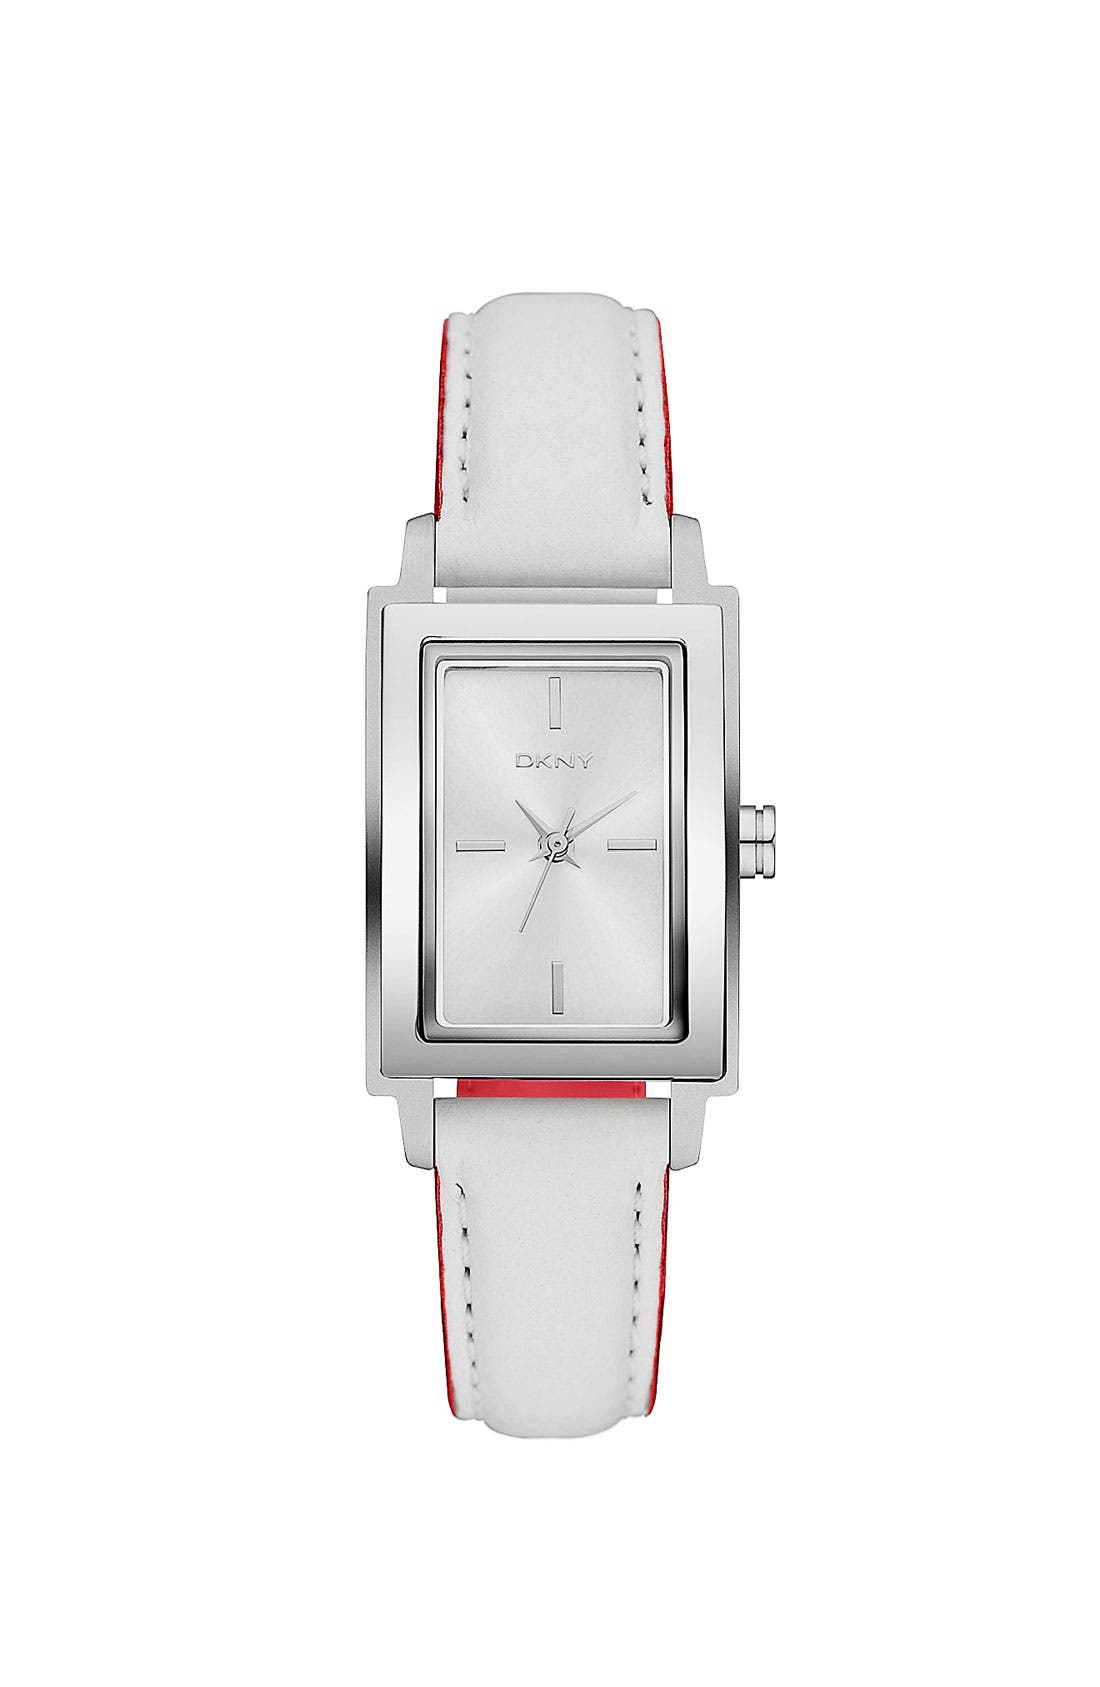 Main Image - DKNY Rectangular Leather Strap Watch, 23mm x 28mm